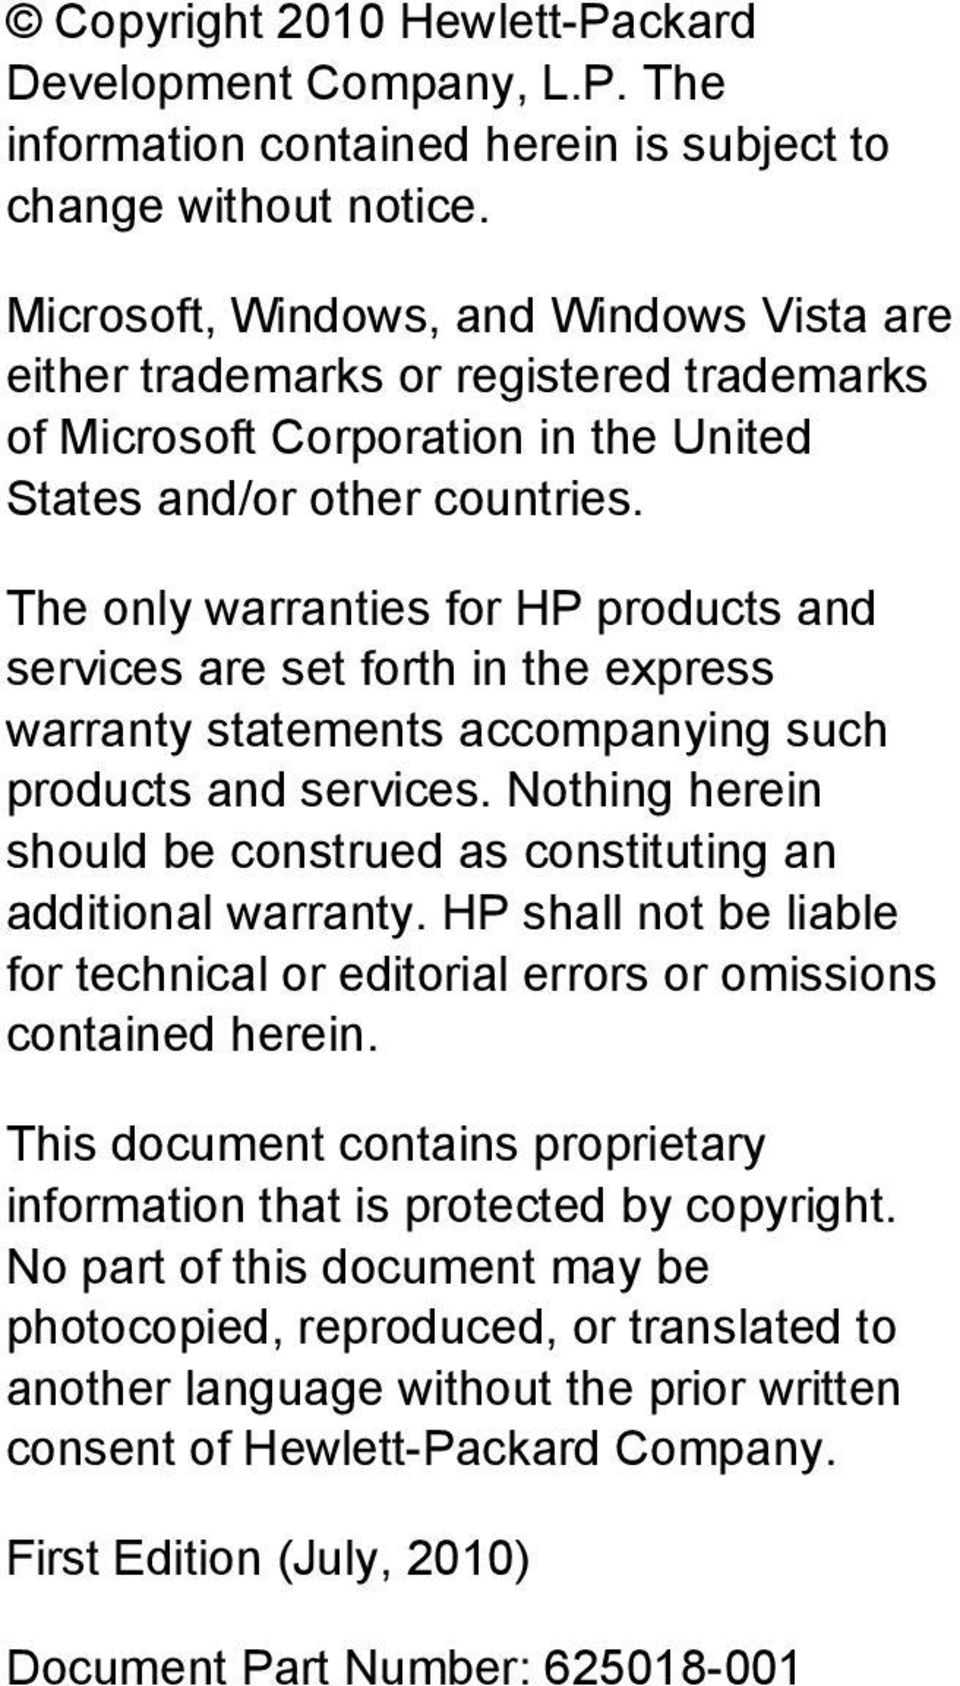 The only warranties for HP products and services are set forth in the express warranty statements accompanying such products and services.